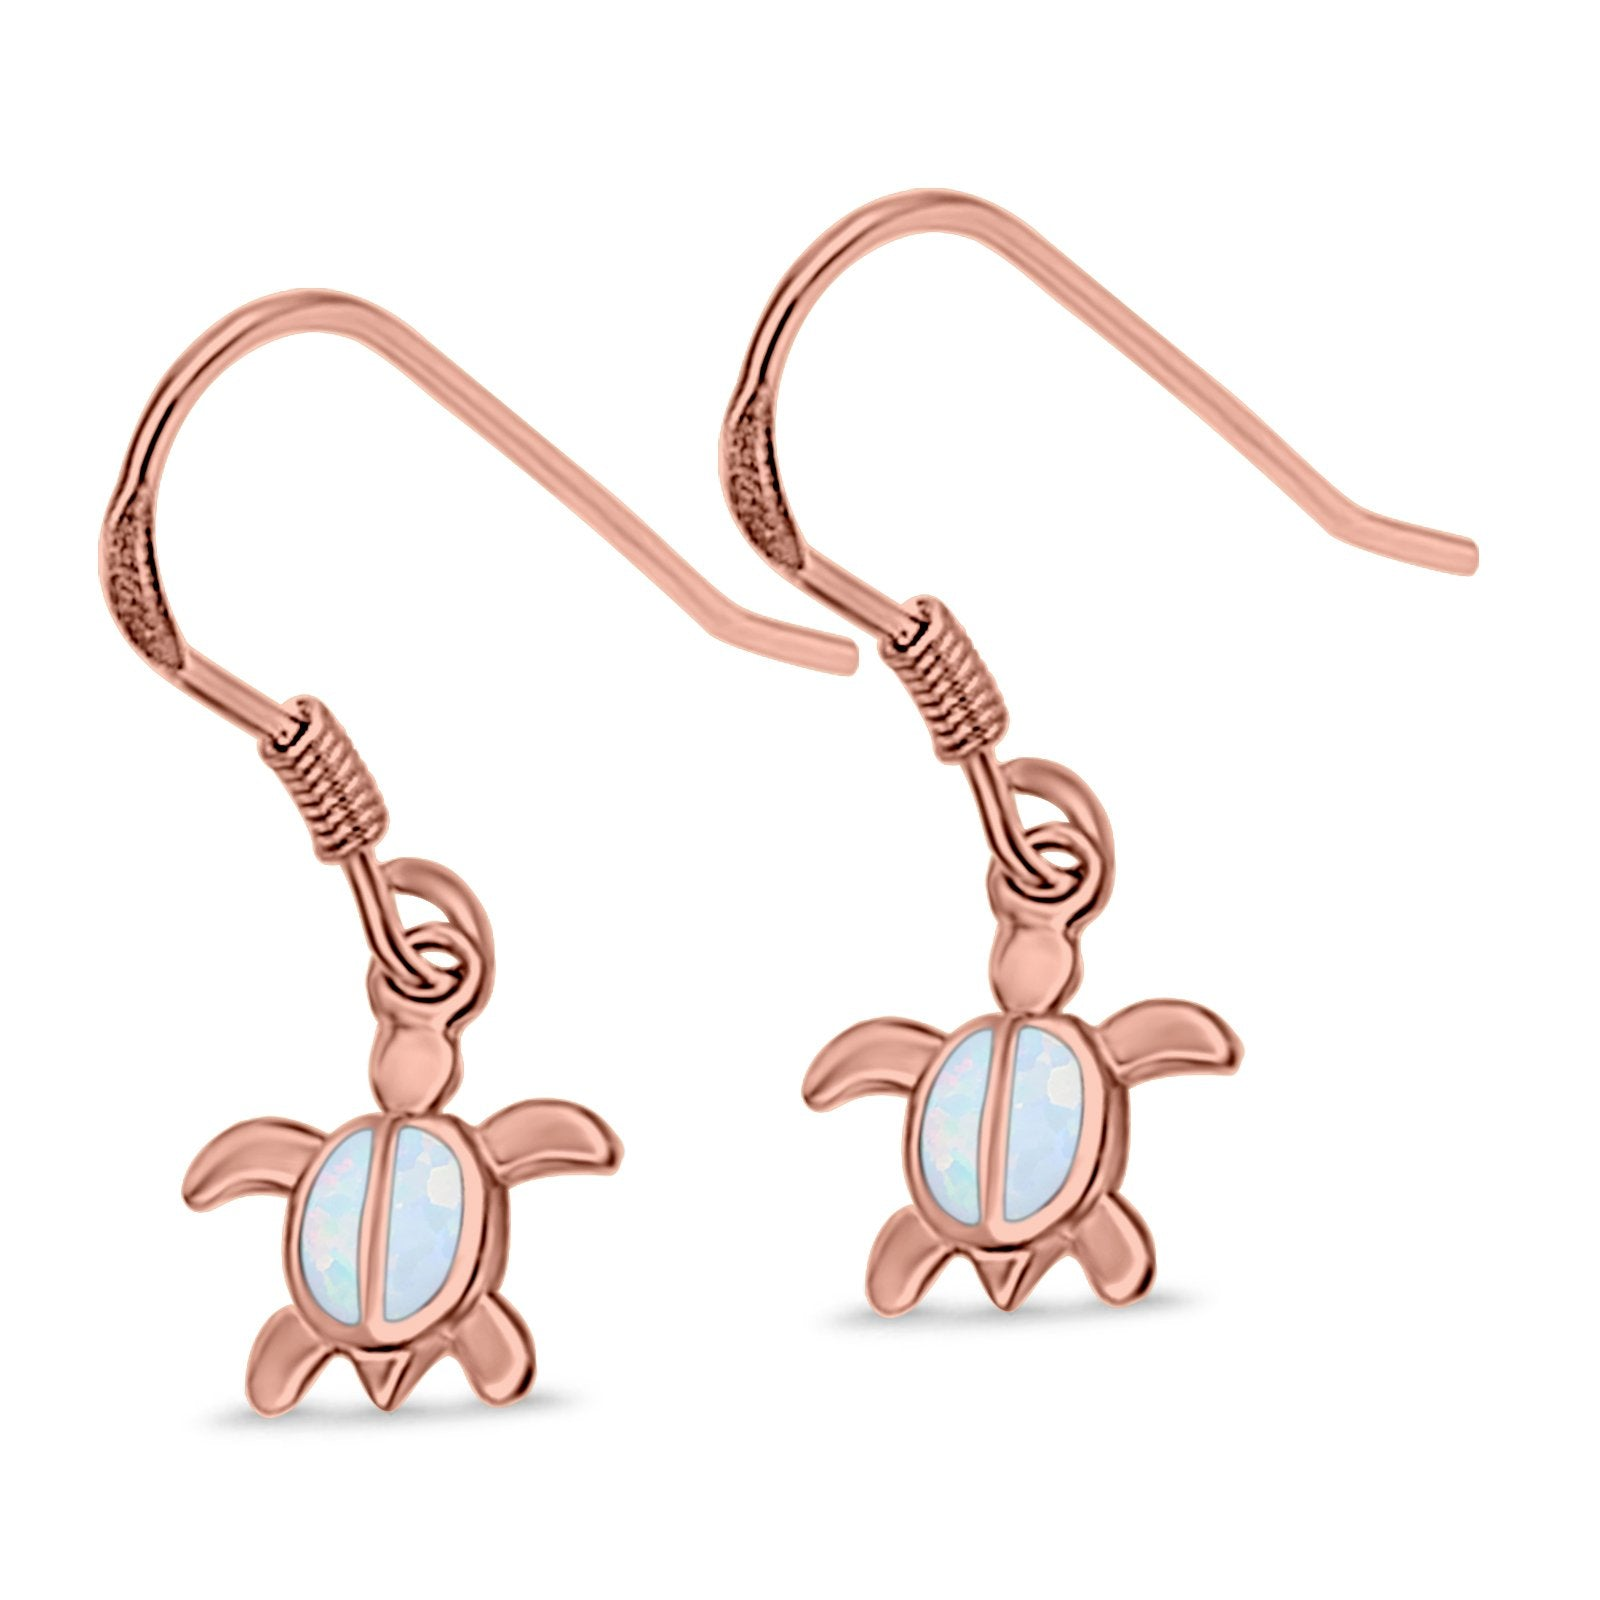 Drop Dangle Turtle Earrings Rose Tone, Lab Created White Opal 925 Sterling Silver